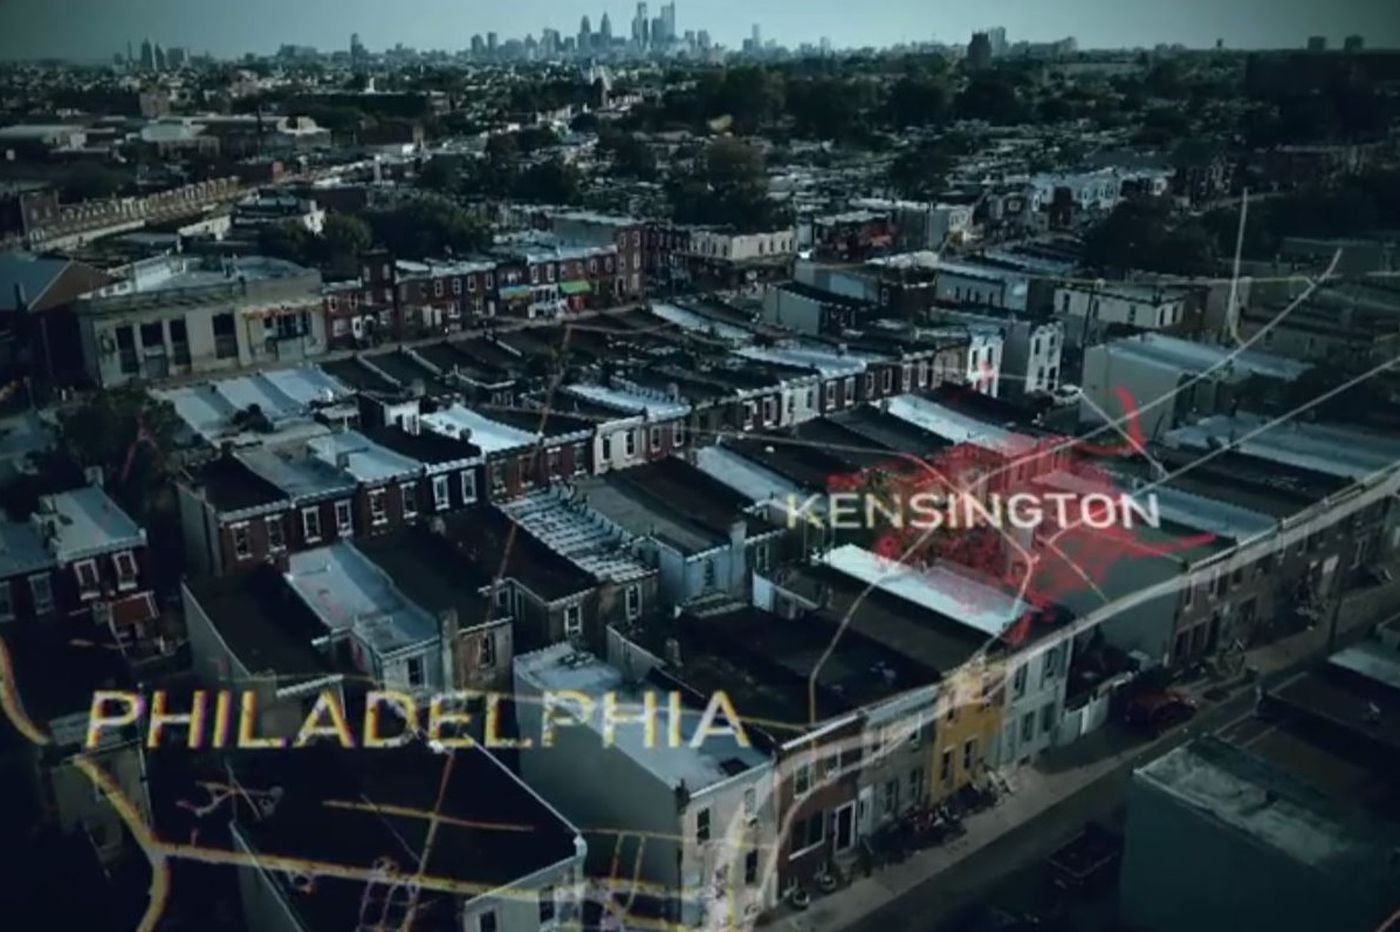 TV's 'Intervention' is set in Philadelphia. Does it sensationalize the city's opioid crisis?